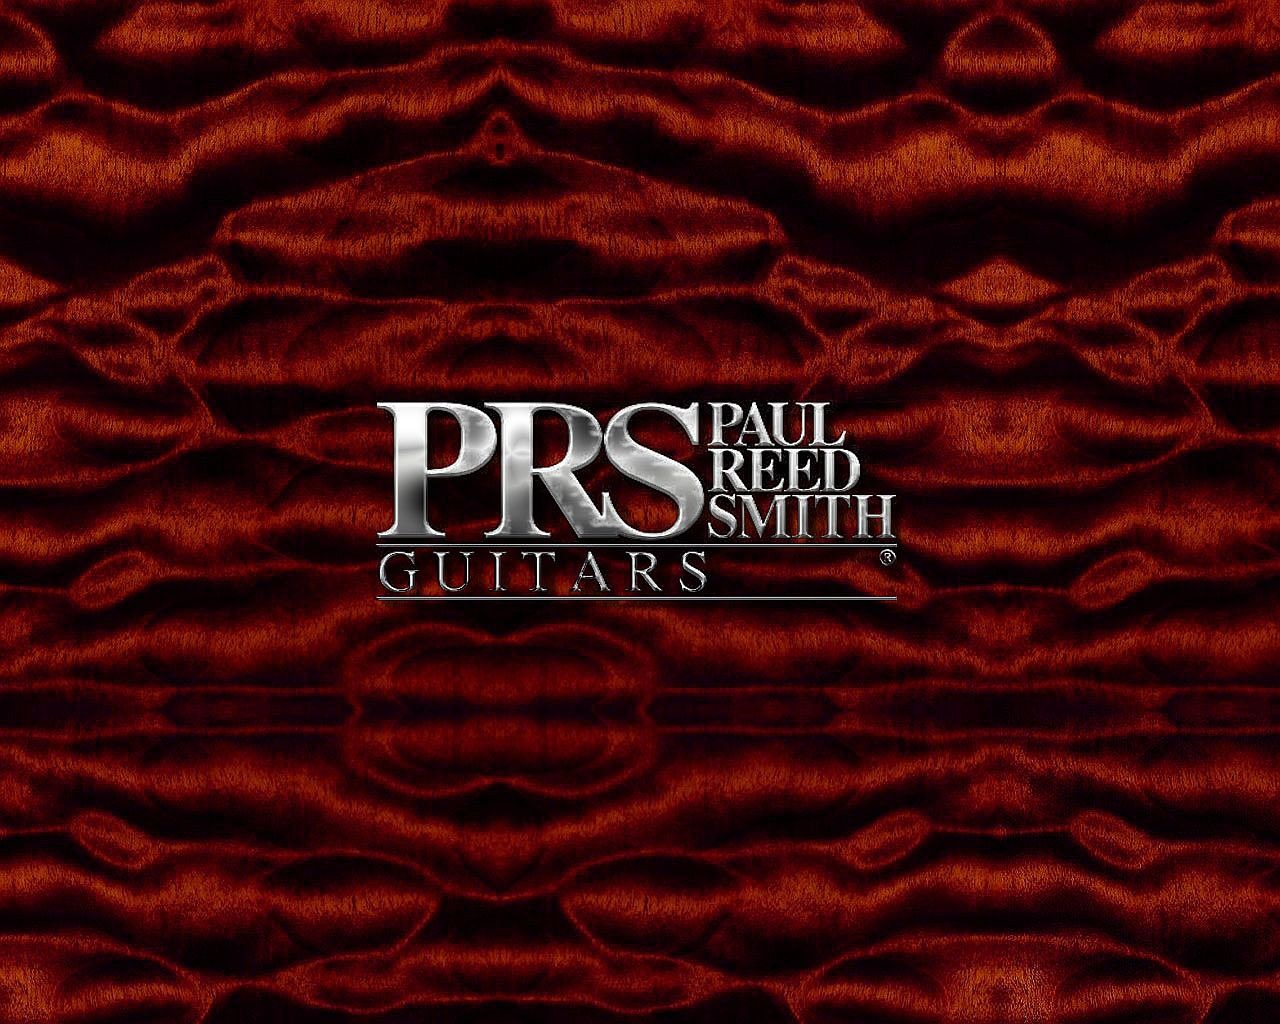 paul reed smith wallpaper 1280x1024